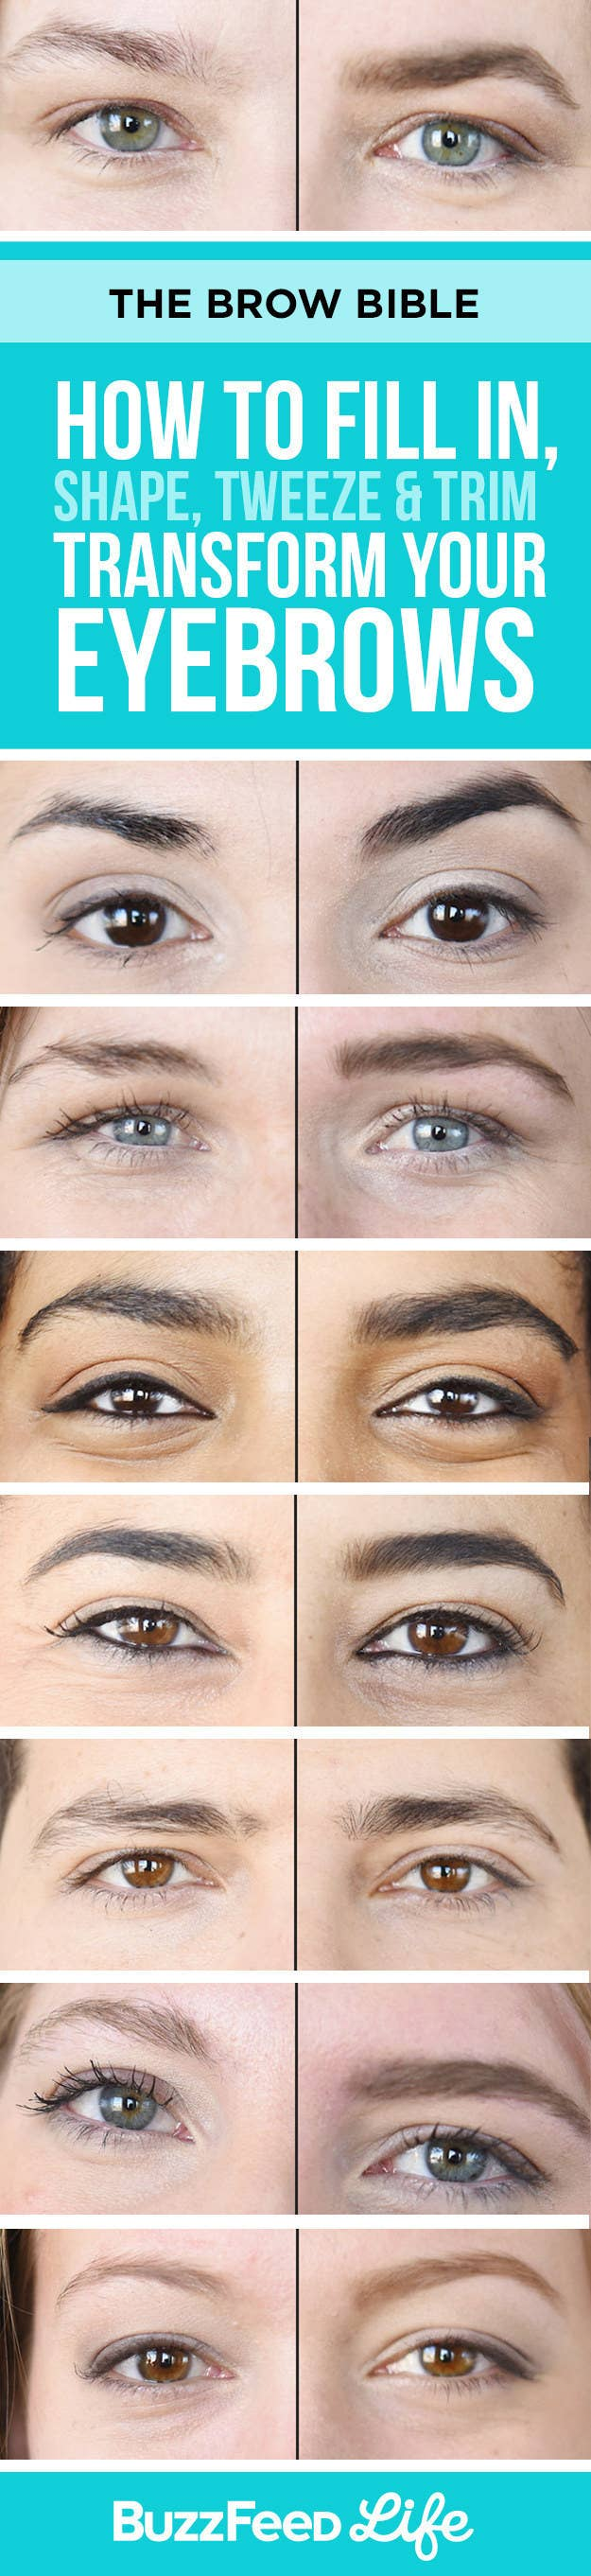 How To Fill In Shape Tweeze Trim And Transform Your Eyebrows